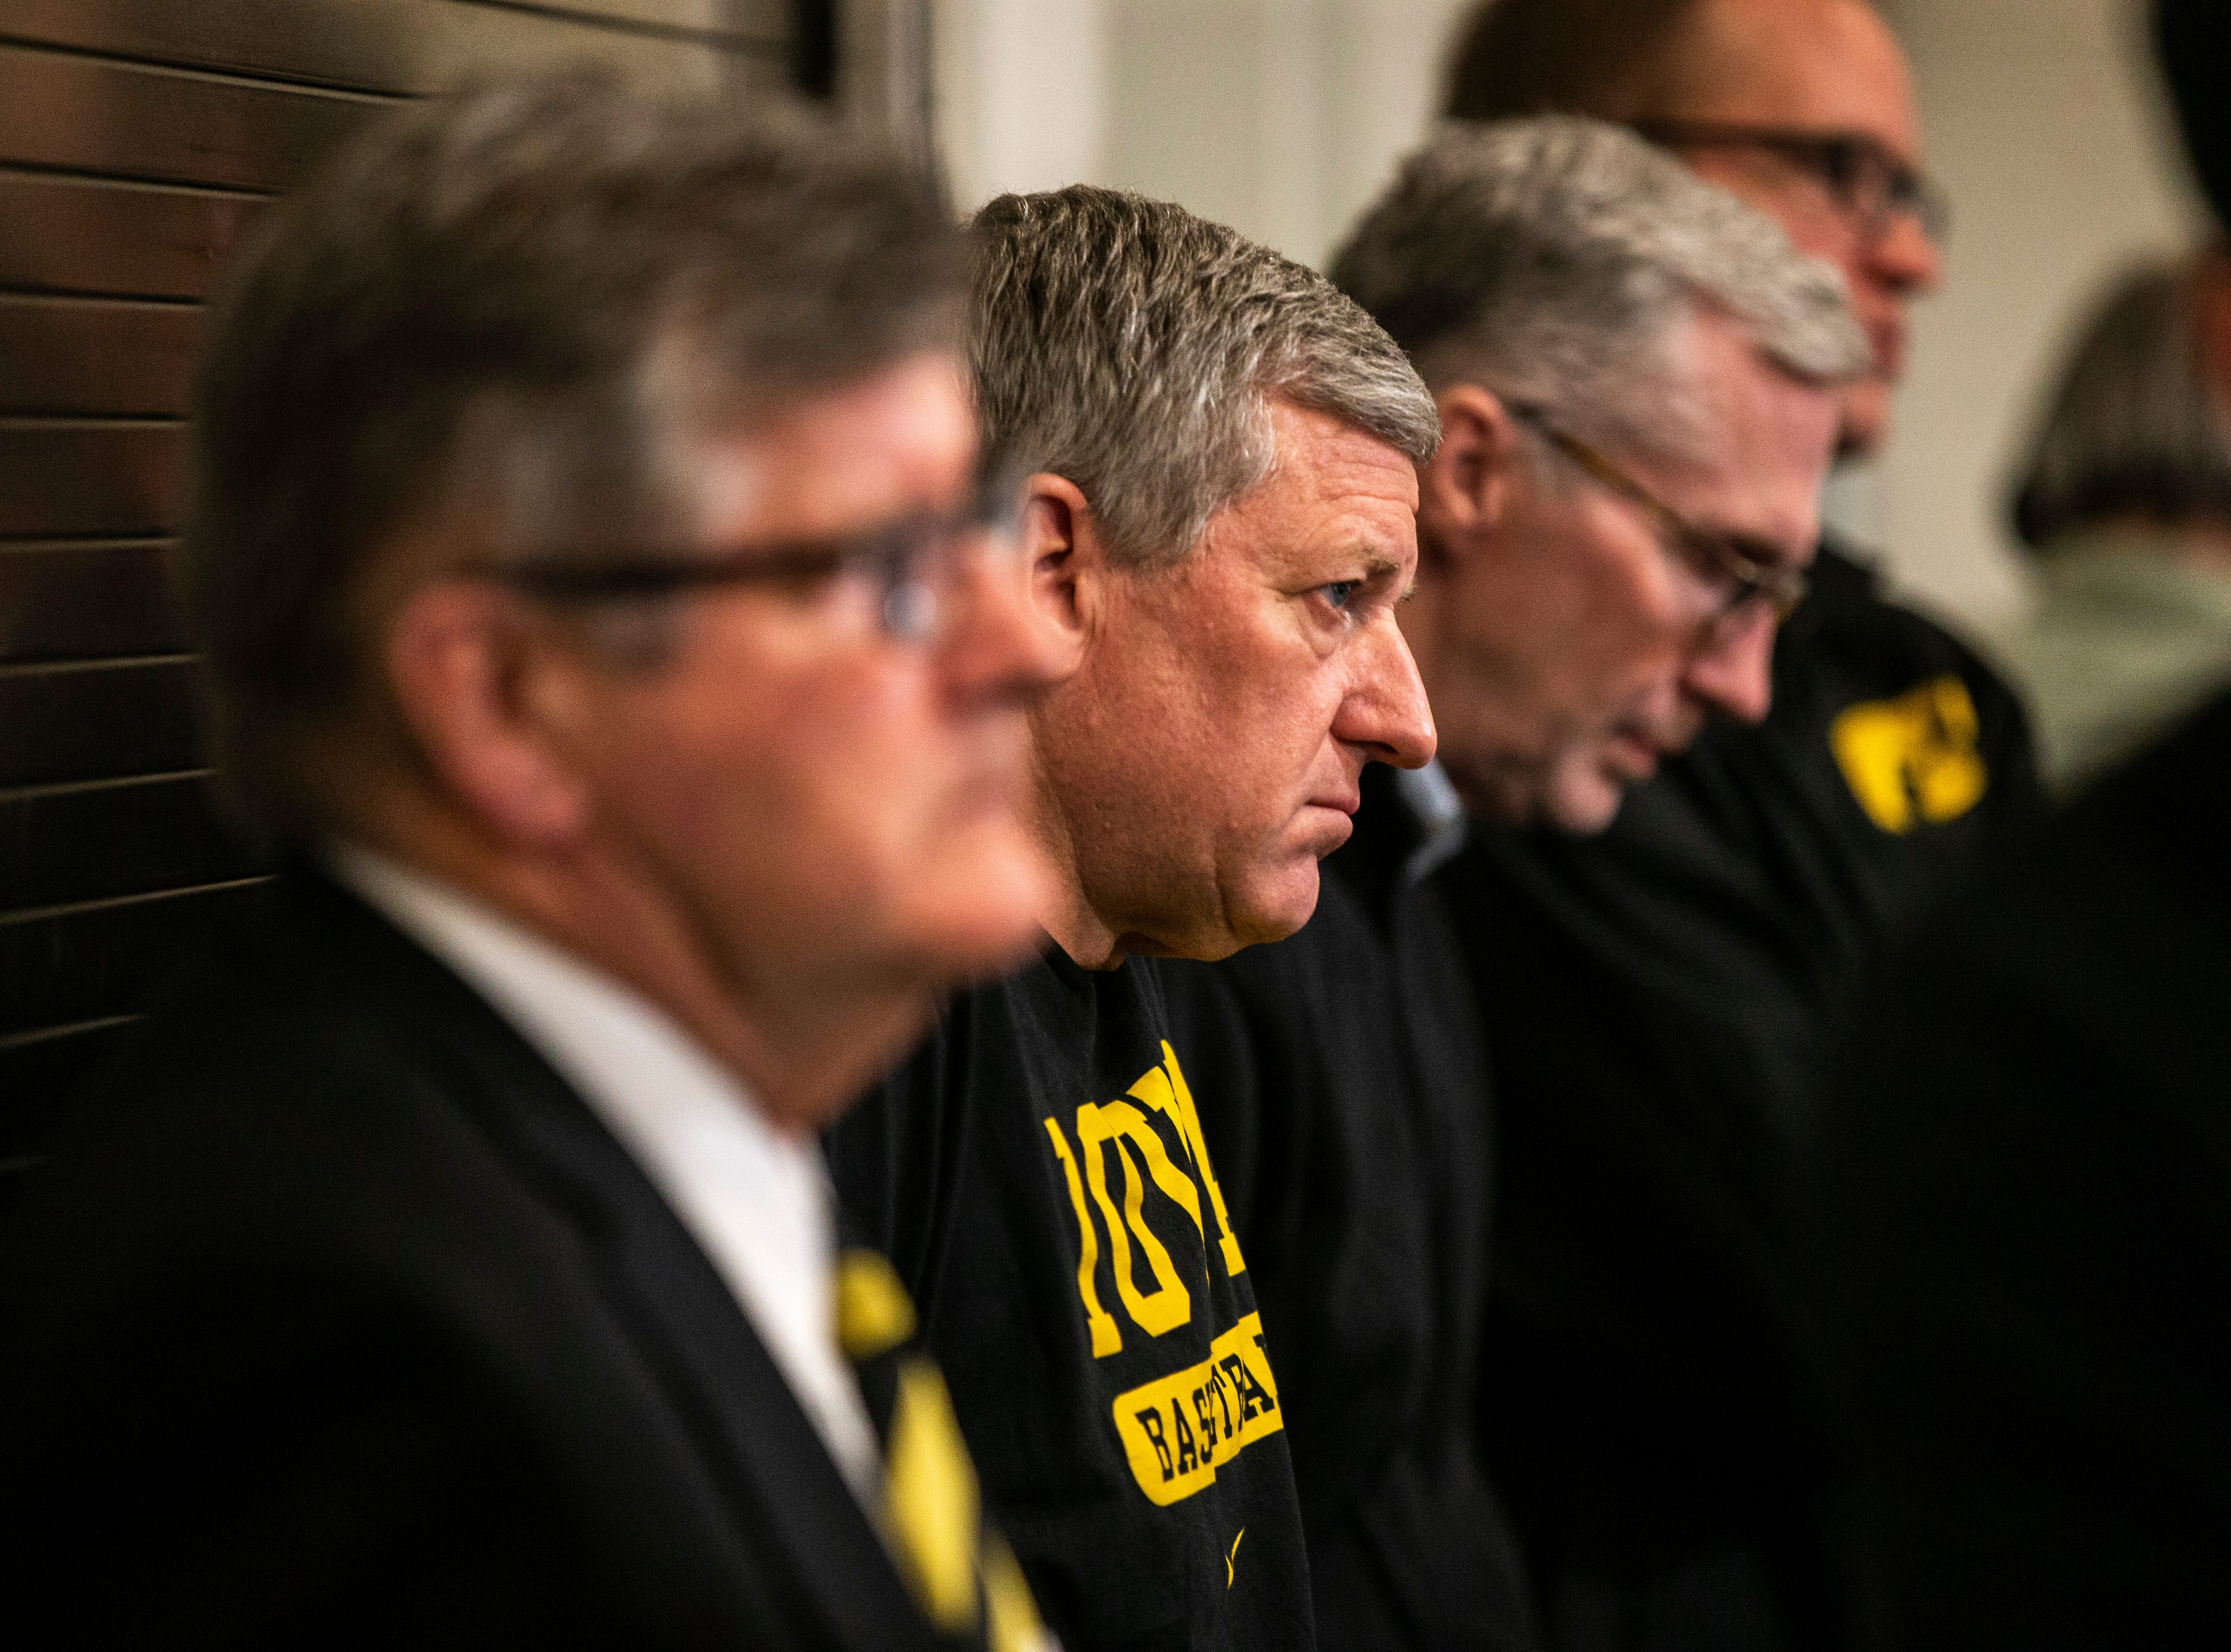 Iowa play-by-play commentator Gary Dolphin and Iowa assistant Kirk Speraw, second from left, listen during a press conference on Wednesday, Feb. 27, 2019, at Carver-Hawkeye Arena in Iowa City, Iowa.